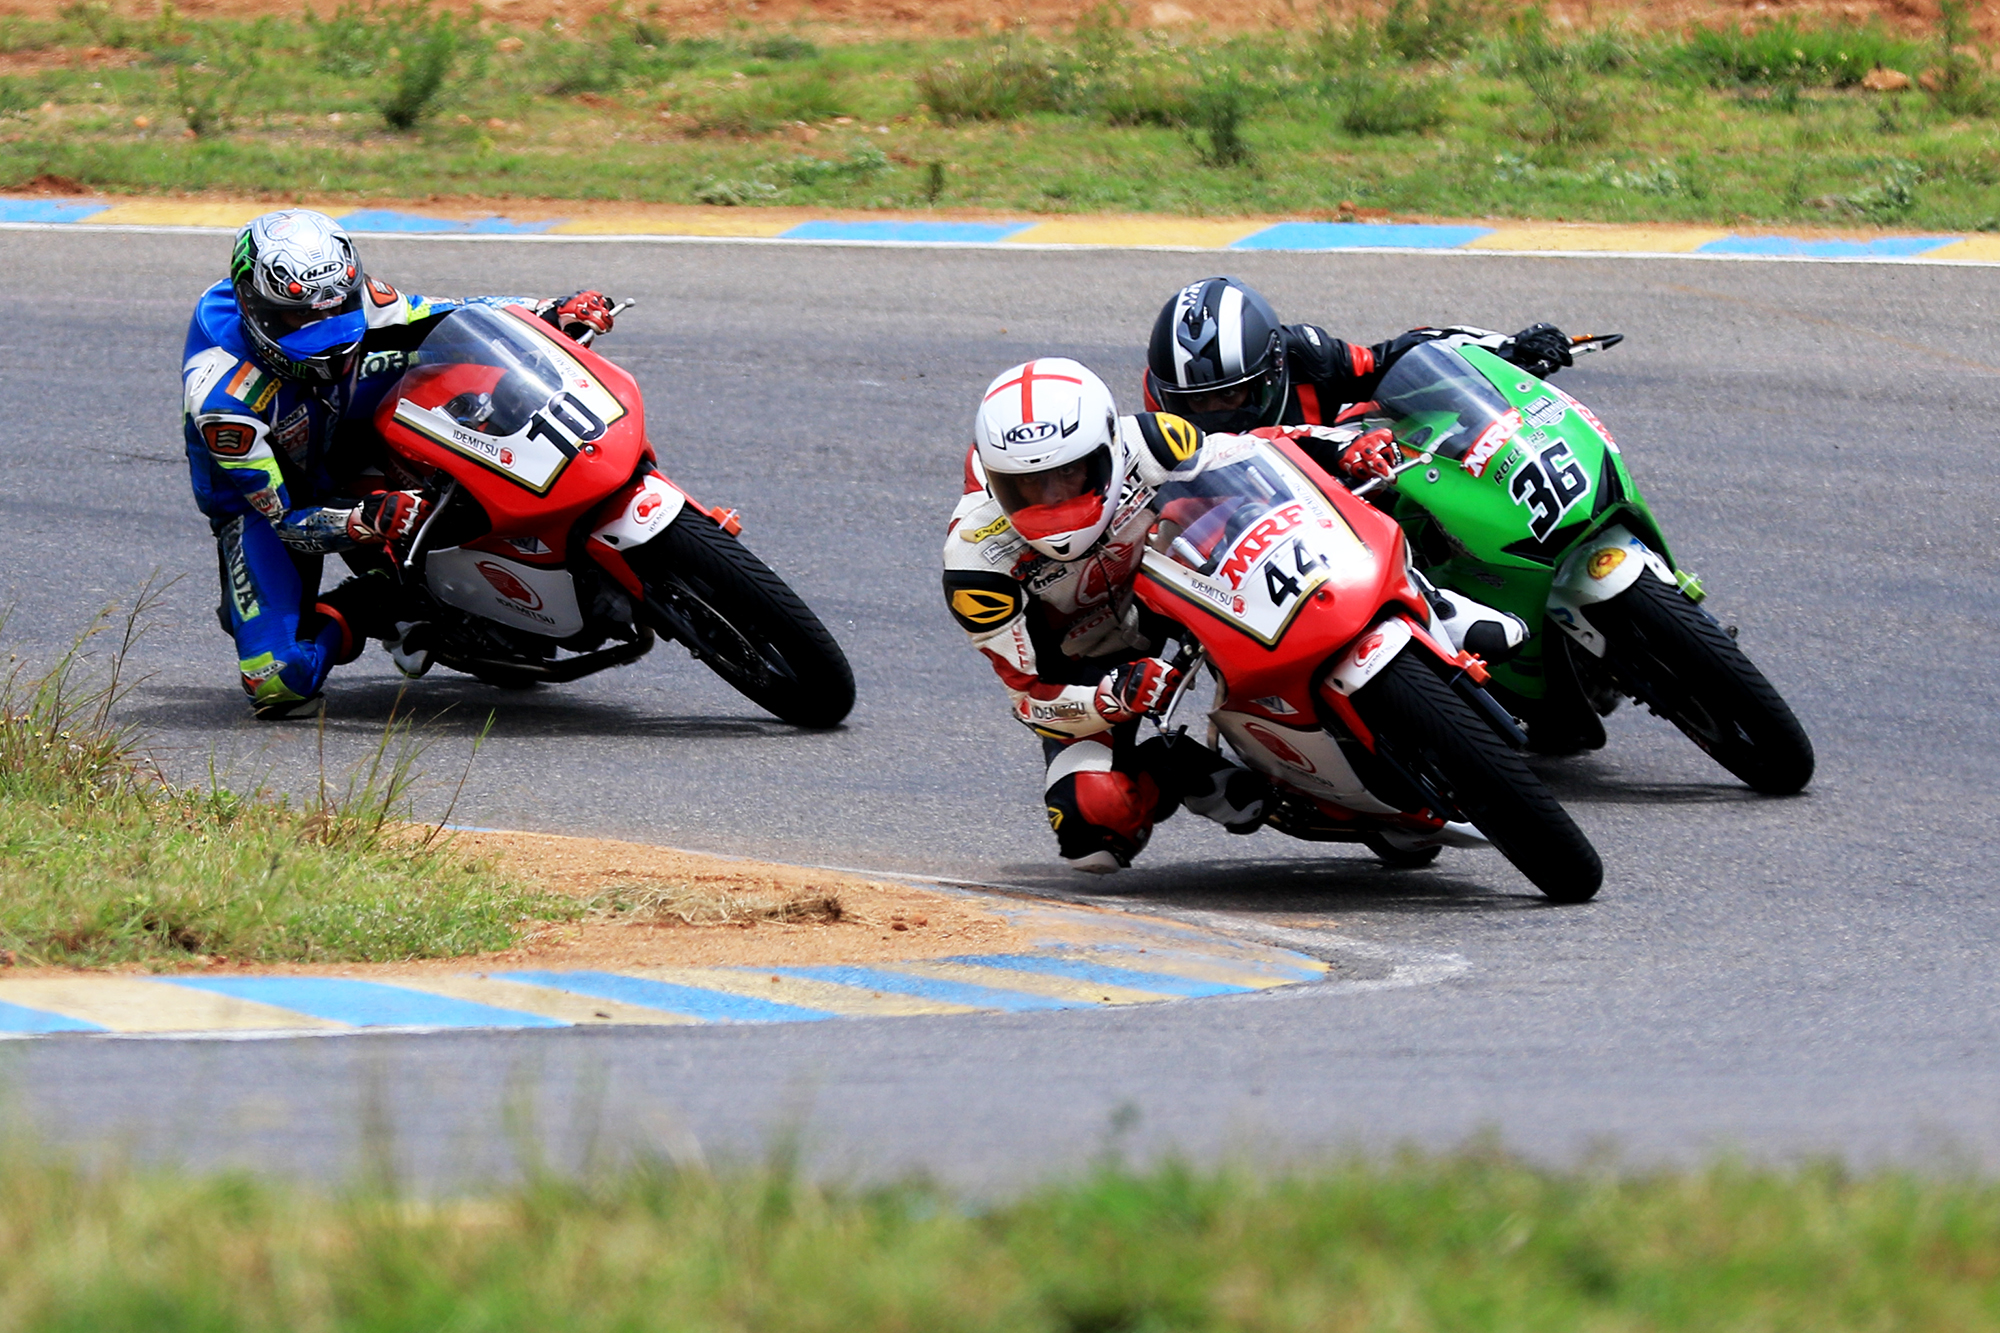 Anish Shetty (No.44), winner of Pro-Stock (165cc) race. Others in picture are Kevin Kannan (36) and Mithun Kumar (10)(June 10)..jpg